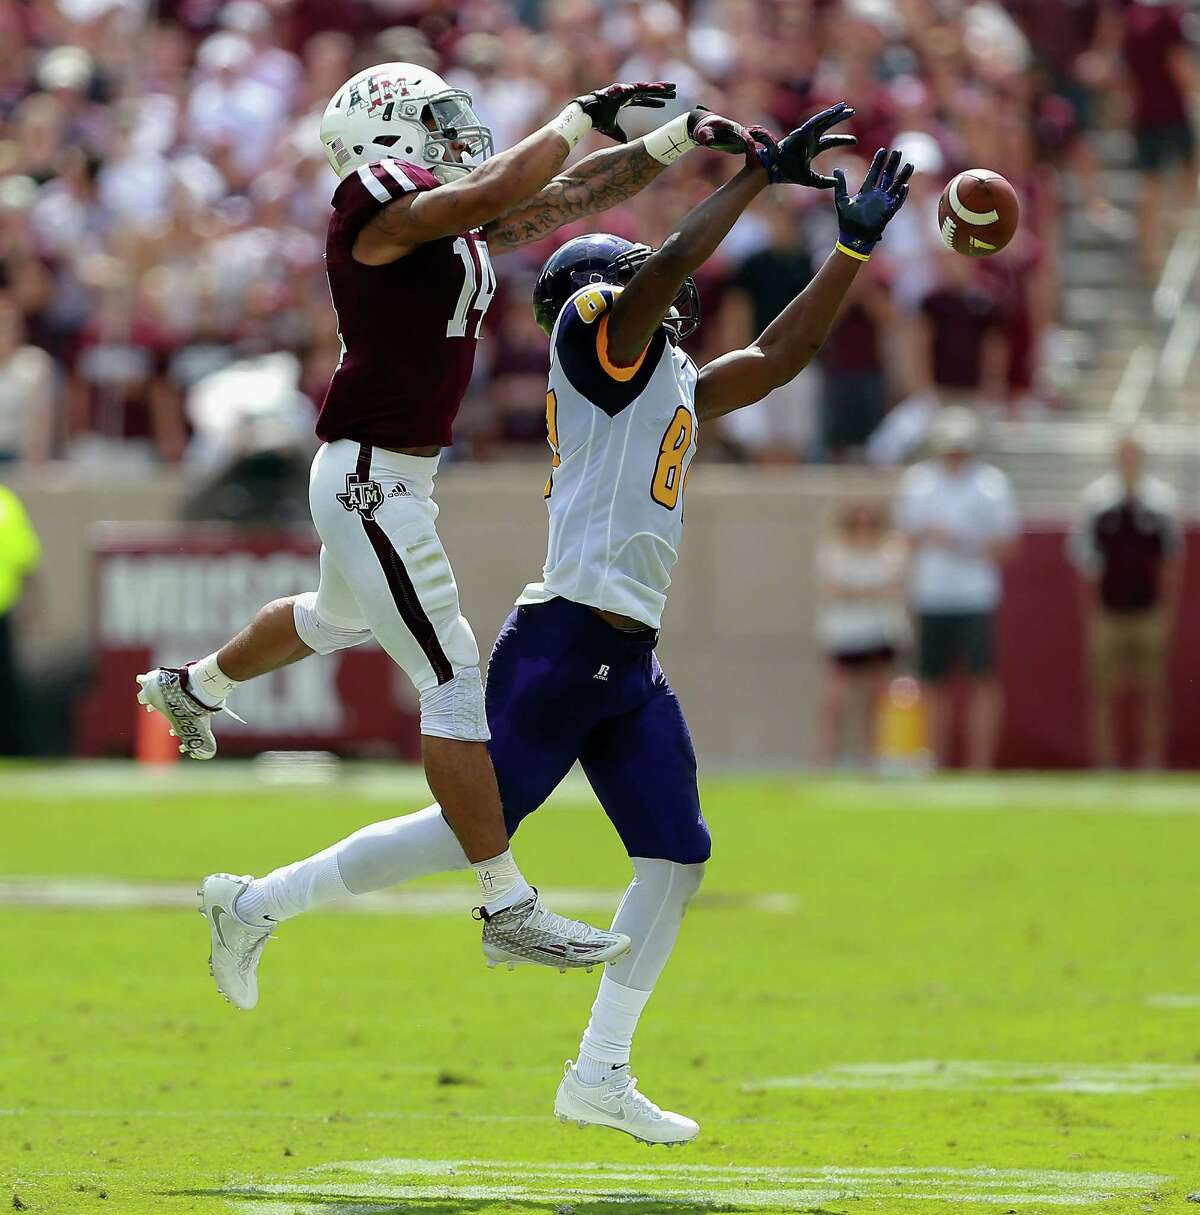 Strong plays like deflecting this pass intended for Prairie View A&M's Demarquo Lastrappe, has earned Texas A&M's Justin Evans, left, some early season notoriety.